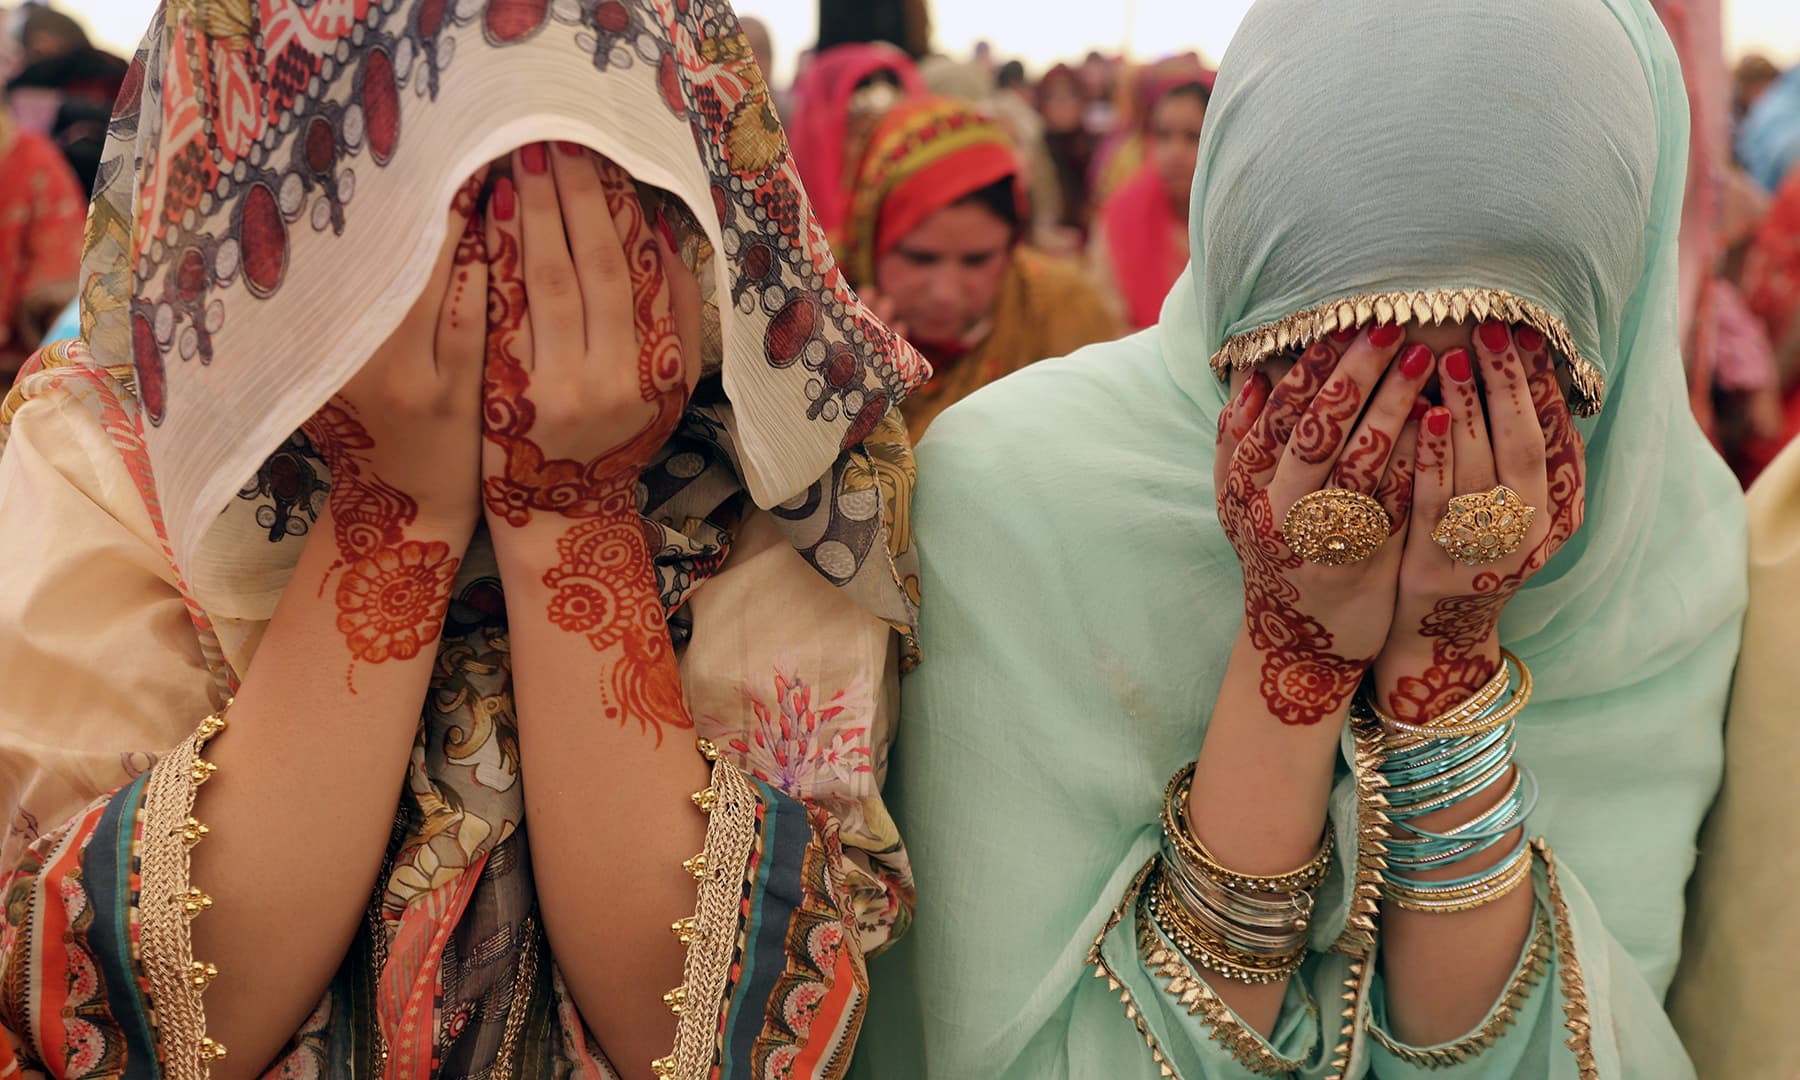 Muslims pray on Eidul Fitr in Lahore on Wednesday, June 5. — AP